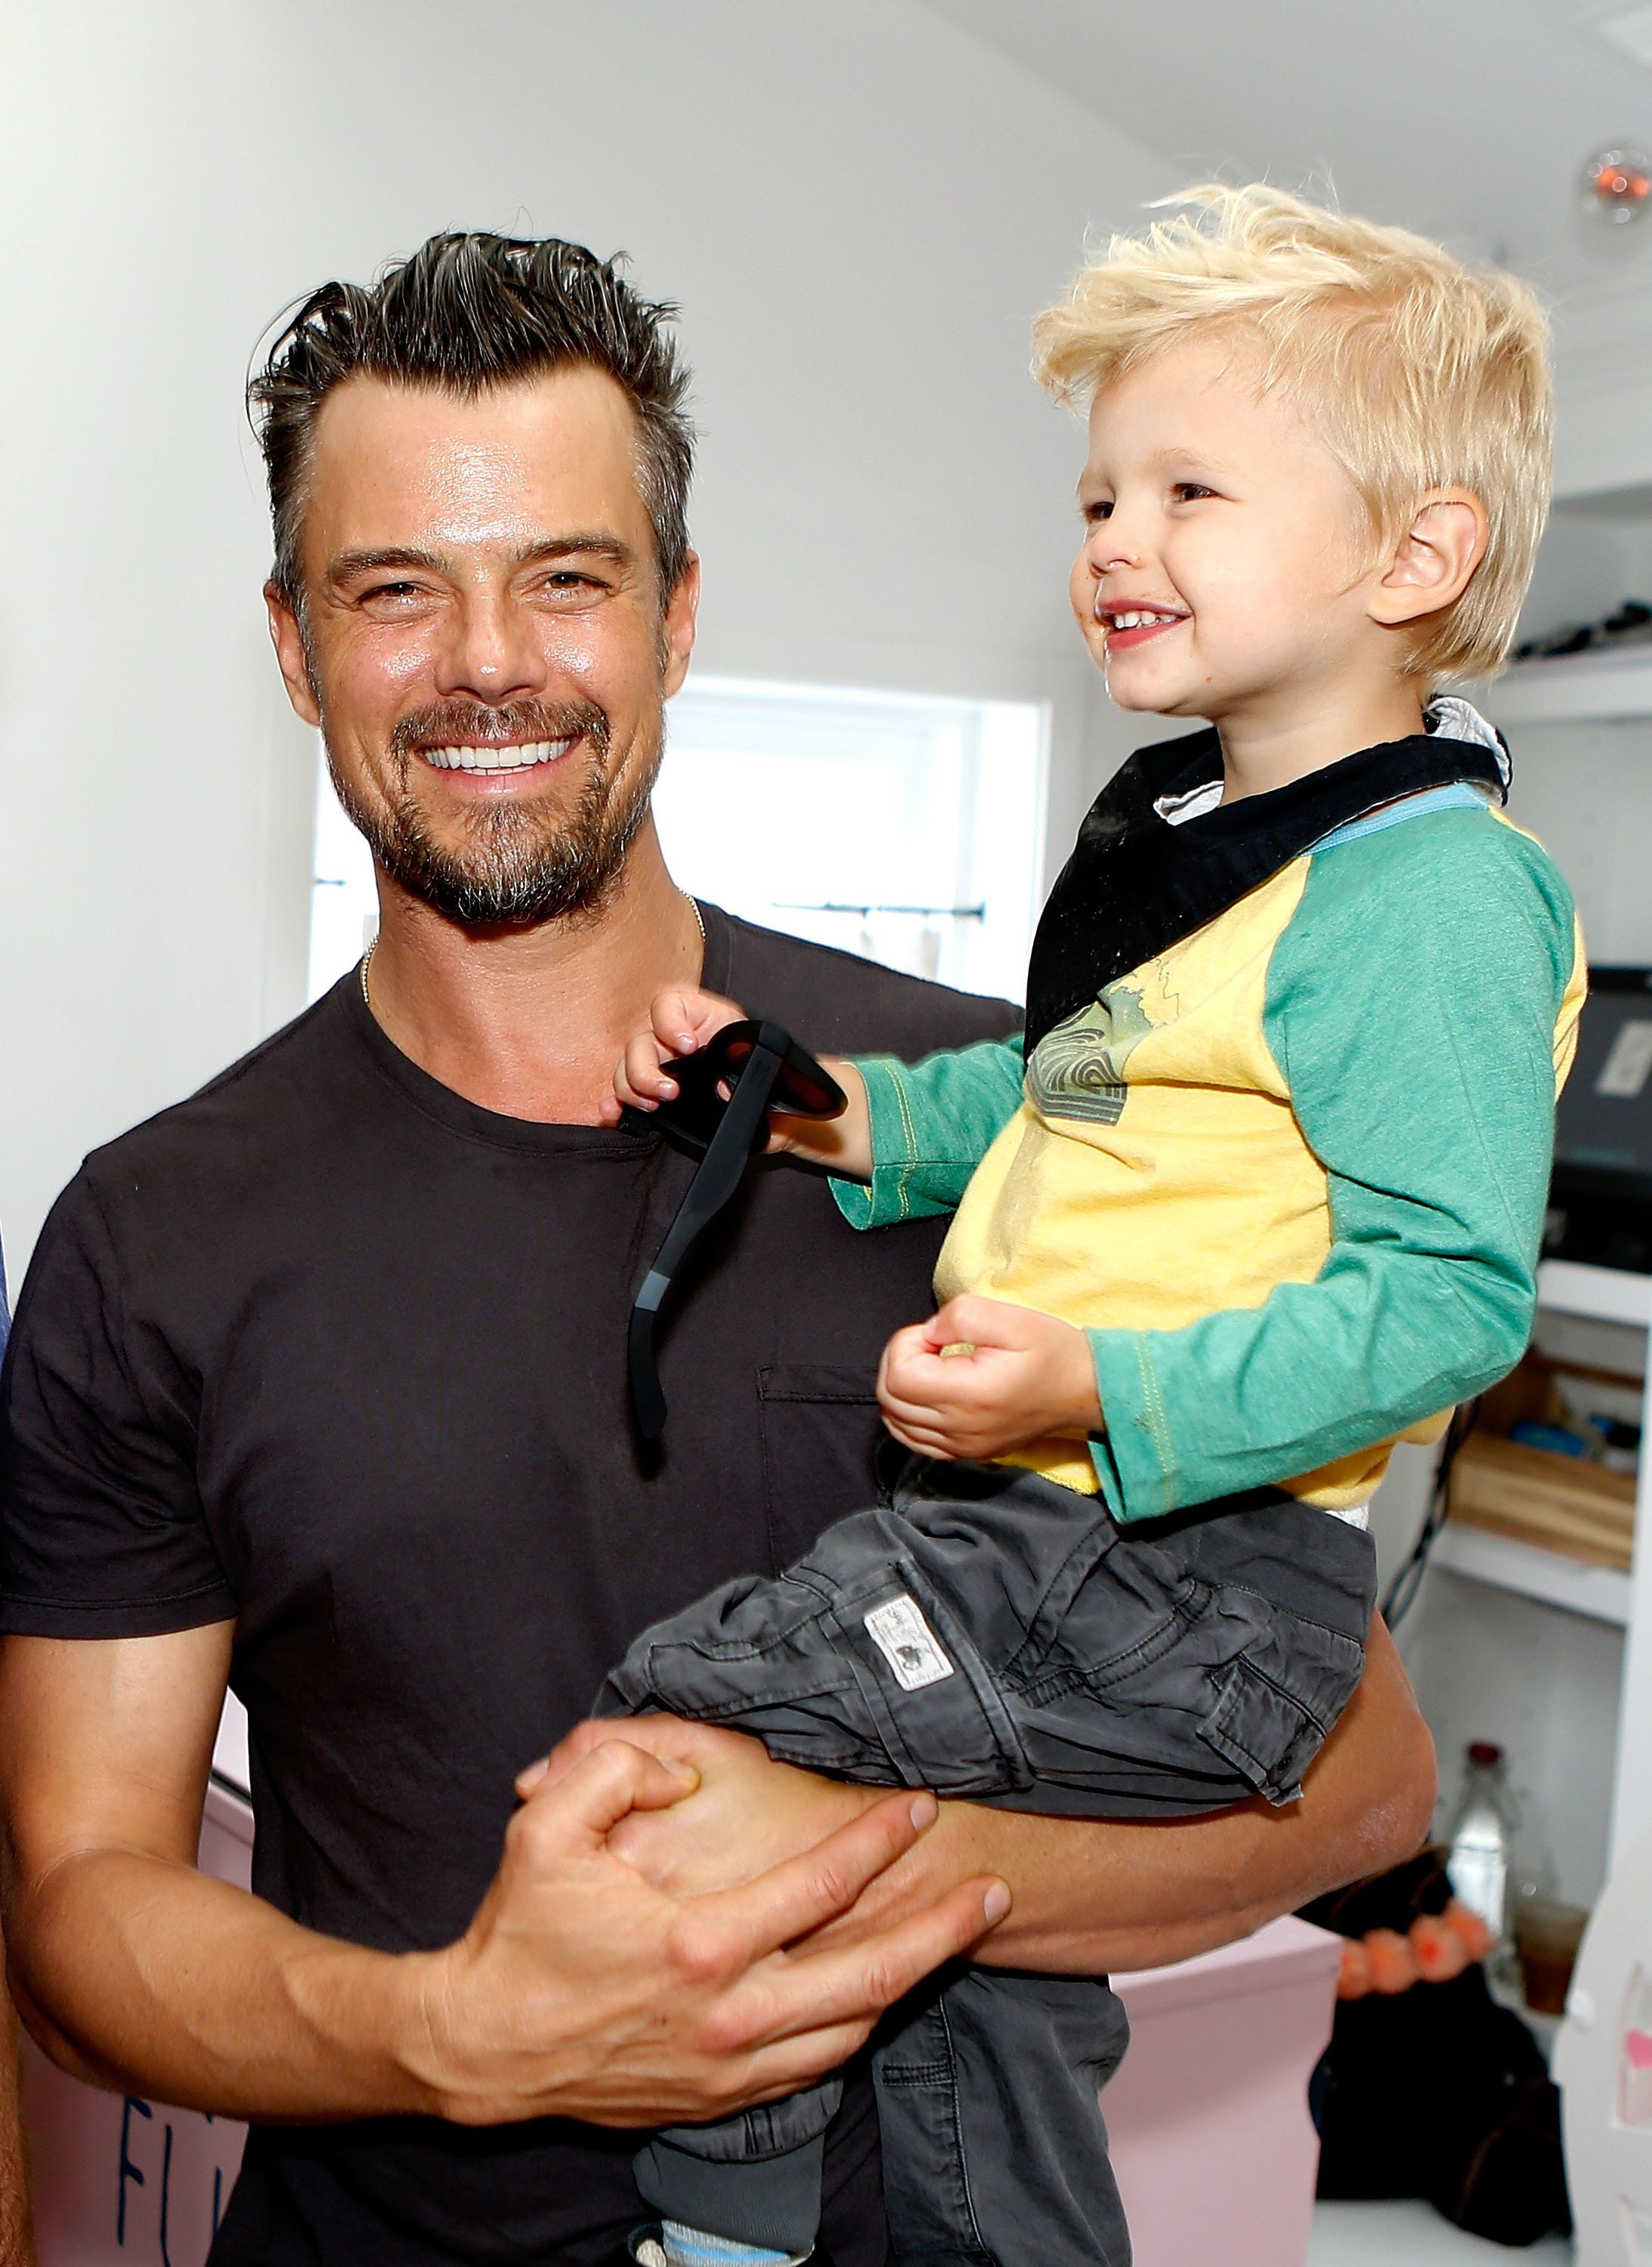 WEST HOLLYWOOD, California - MARCH 24: Josh Duhamel and son Axl attend the partnership celebration between TOMS and Oceana to help save the sea turtles on March 24, 2016 at Au Fudge in West Hollywood, California.  (Photo by Randy Shropshire/Getty Images for Oceana)